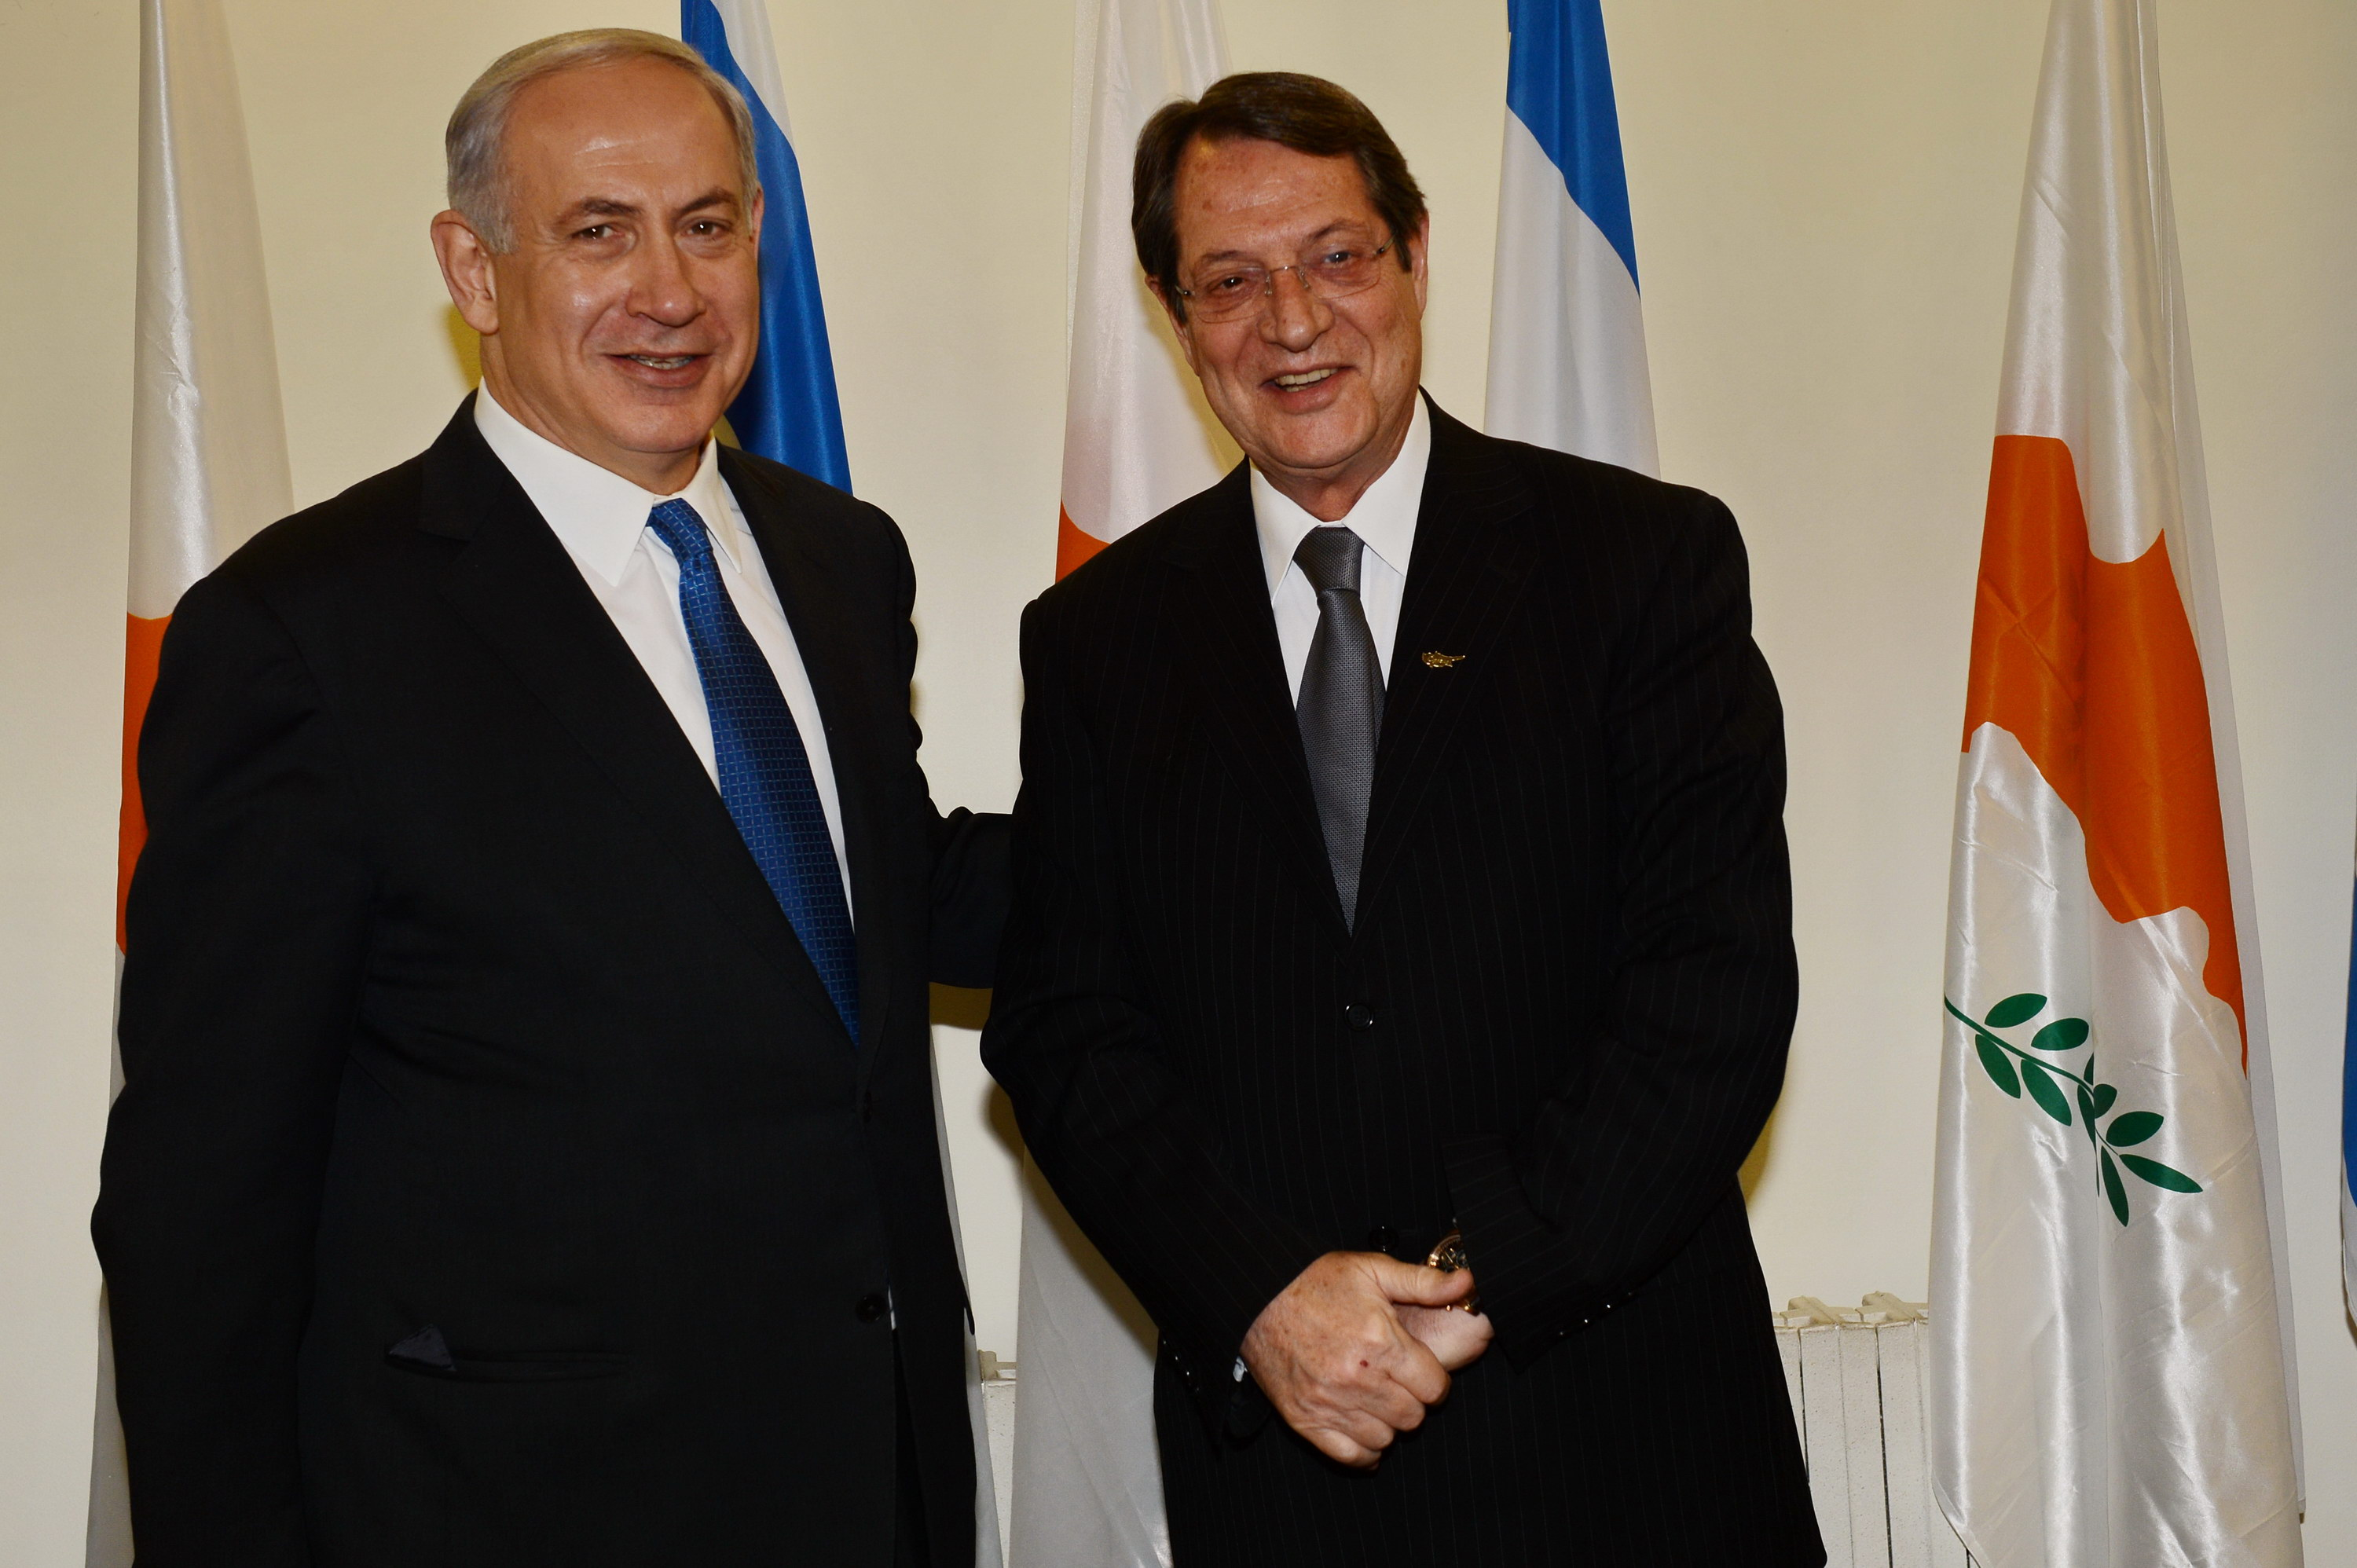 Netanyahu and Anastasiades discuss energy and Cyprus problem